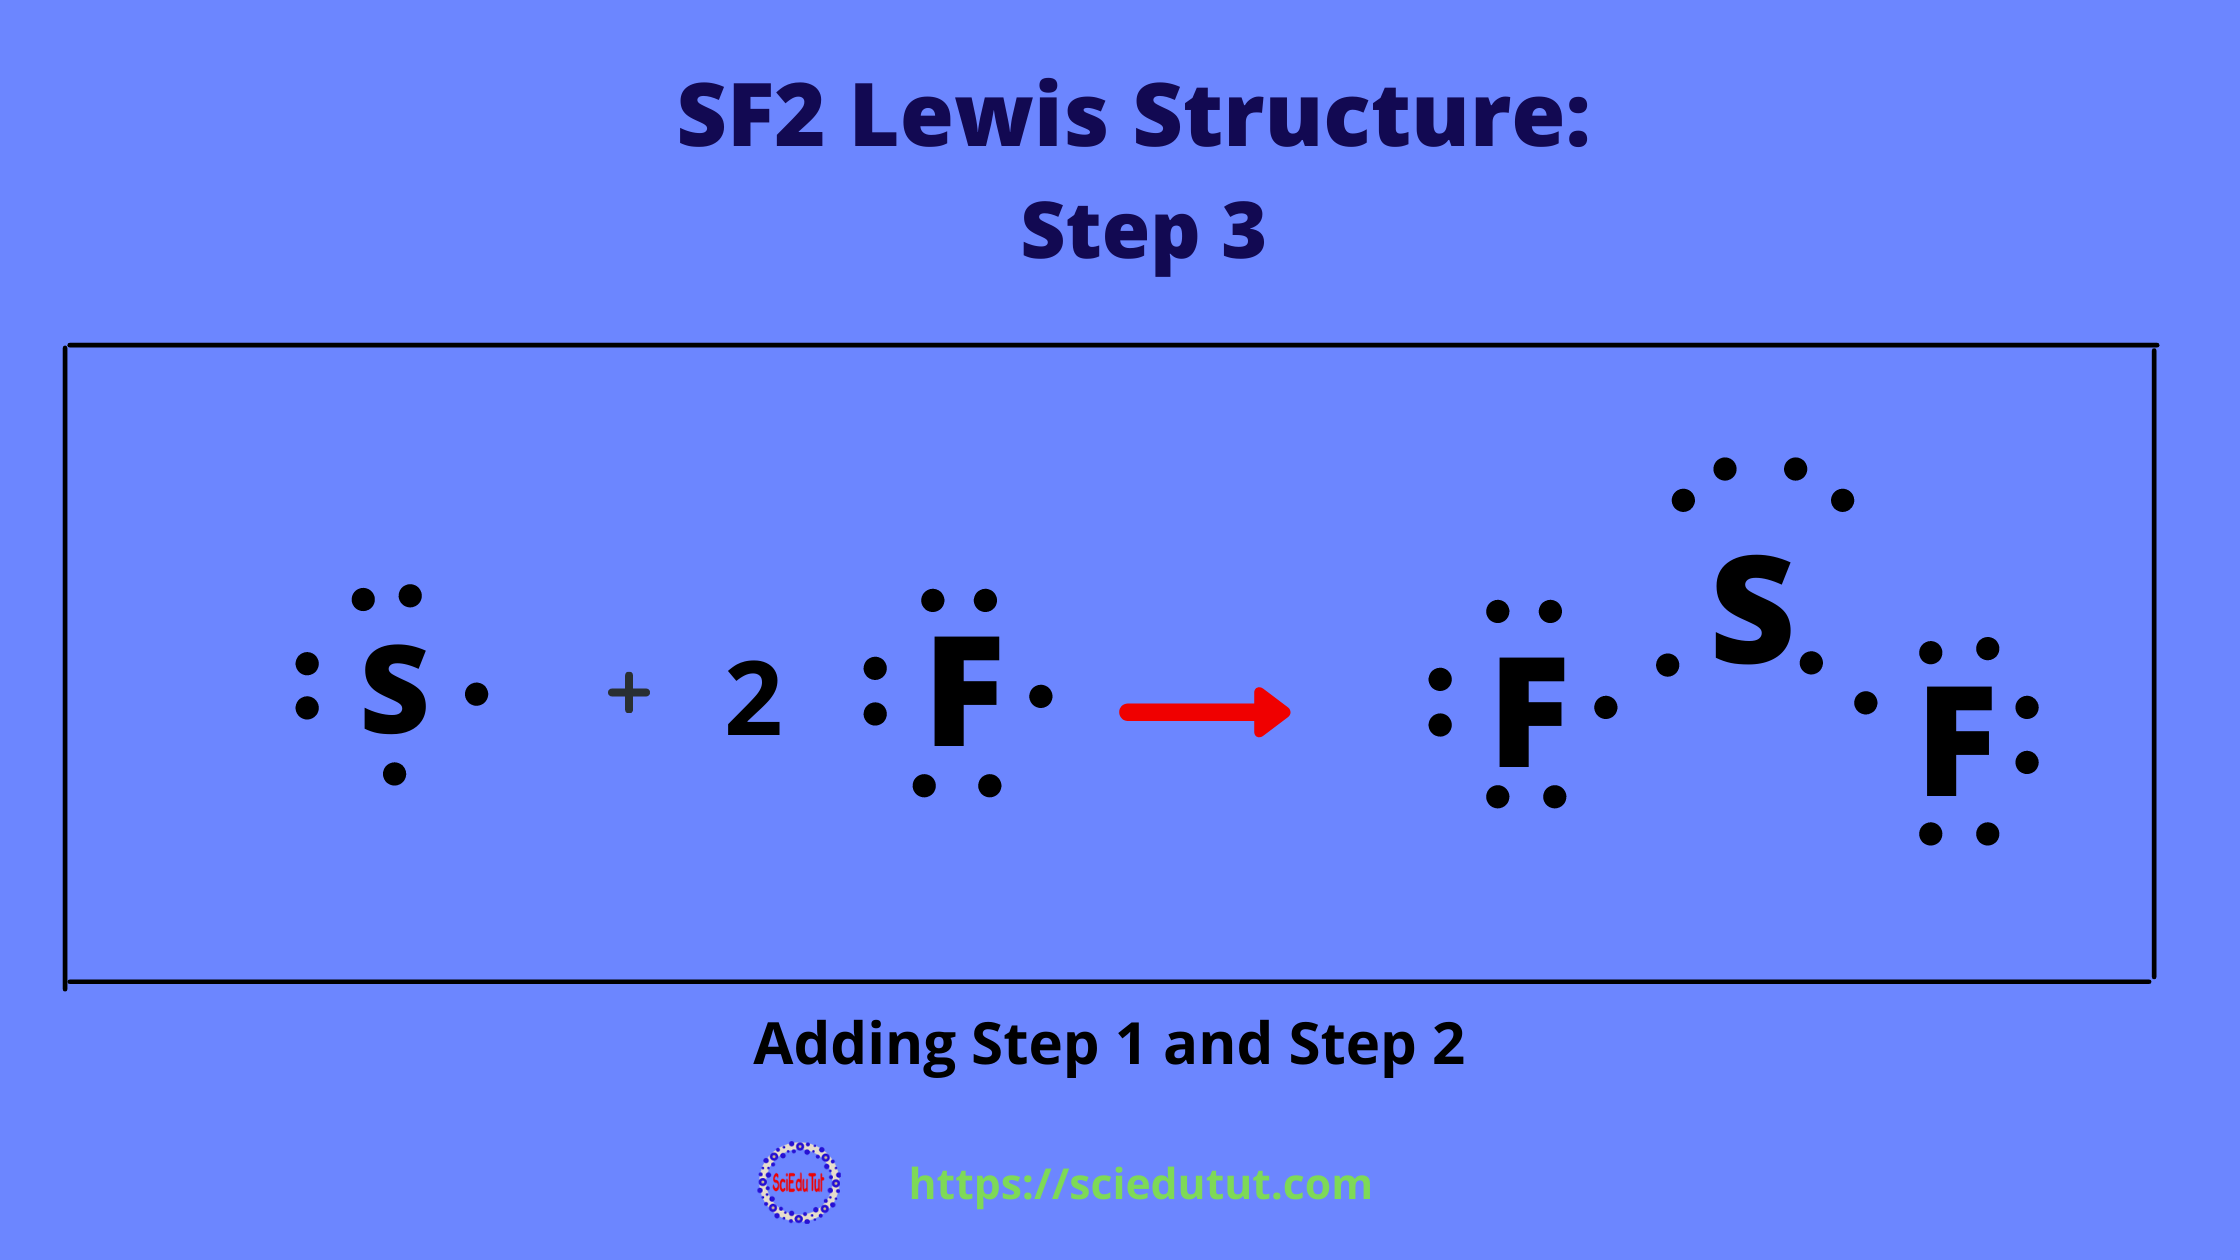 How to draw SF2 Lewis Structure?